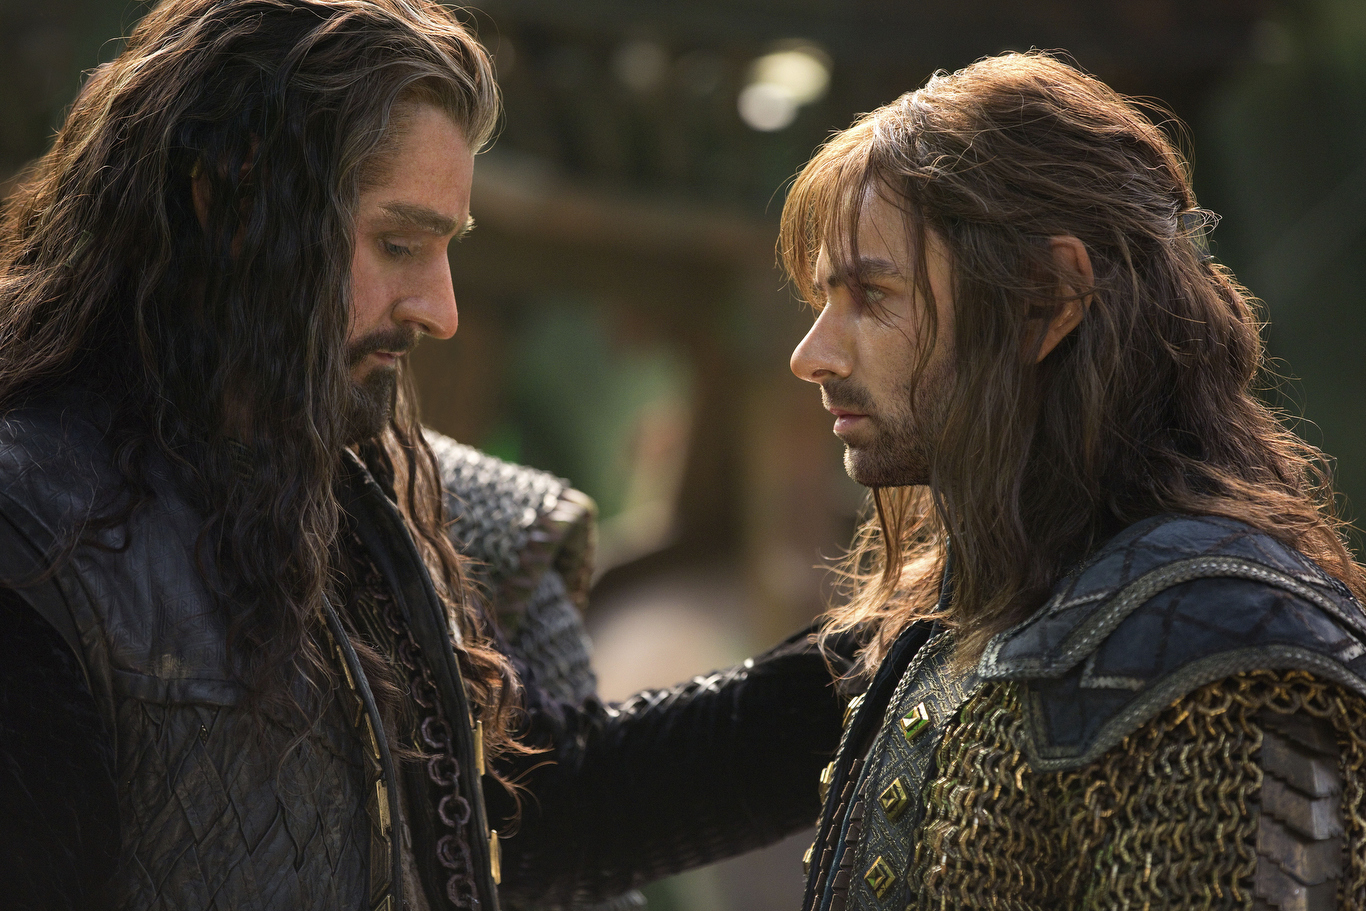 No Merchandising. Editorial Use Only. No Book Cover Usage.Mandatory Credit: Photo by Todd Eyre/New Line/MGM/Wingn/REX/Shutterstock (5886032ak)Richard Armitage, Aidan TurnerThe Hobbit - The Battle Of The Five Armies - 2014Director: Peter JacksonNew Line/MGM/Wingnut FilmsNEW ZEALAND/USAScene StillFantasyThe Hobbit - The Battle Of The Five ArmiesLe Hobbit: La bataille des cinq armŽes